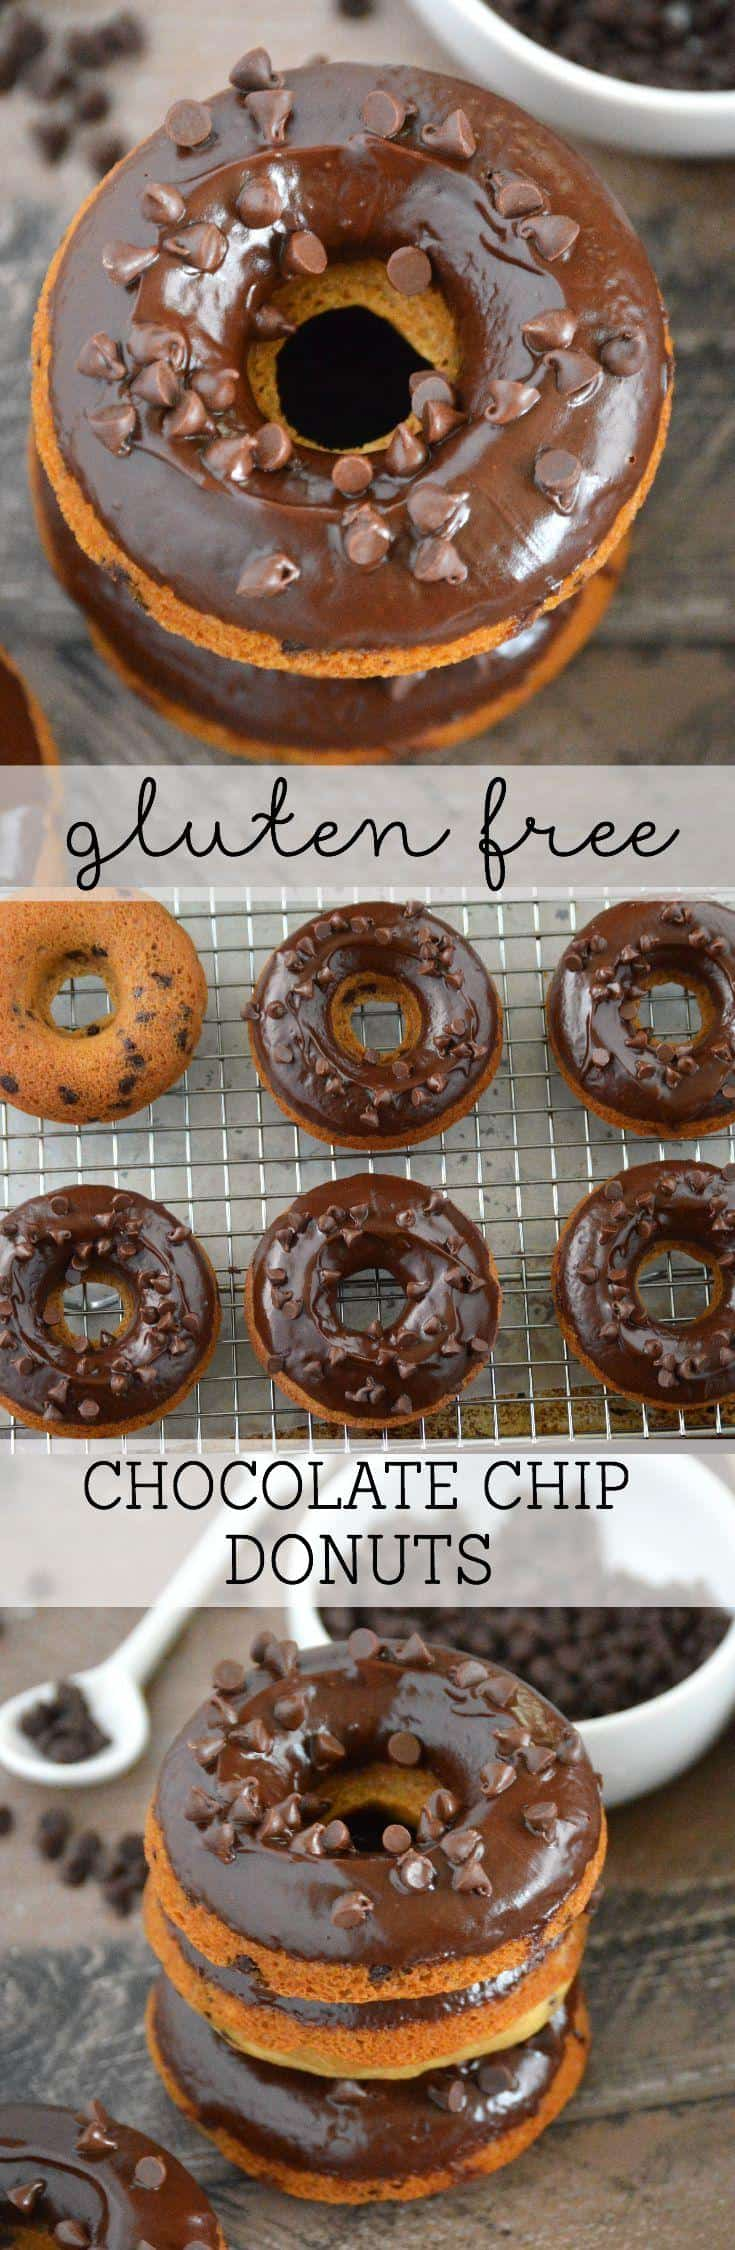 Gluten Free Chocolate Chip Donuts from What The Fork Food Blog | @WhatTheForkBlog | whattheforkfoodblog.com